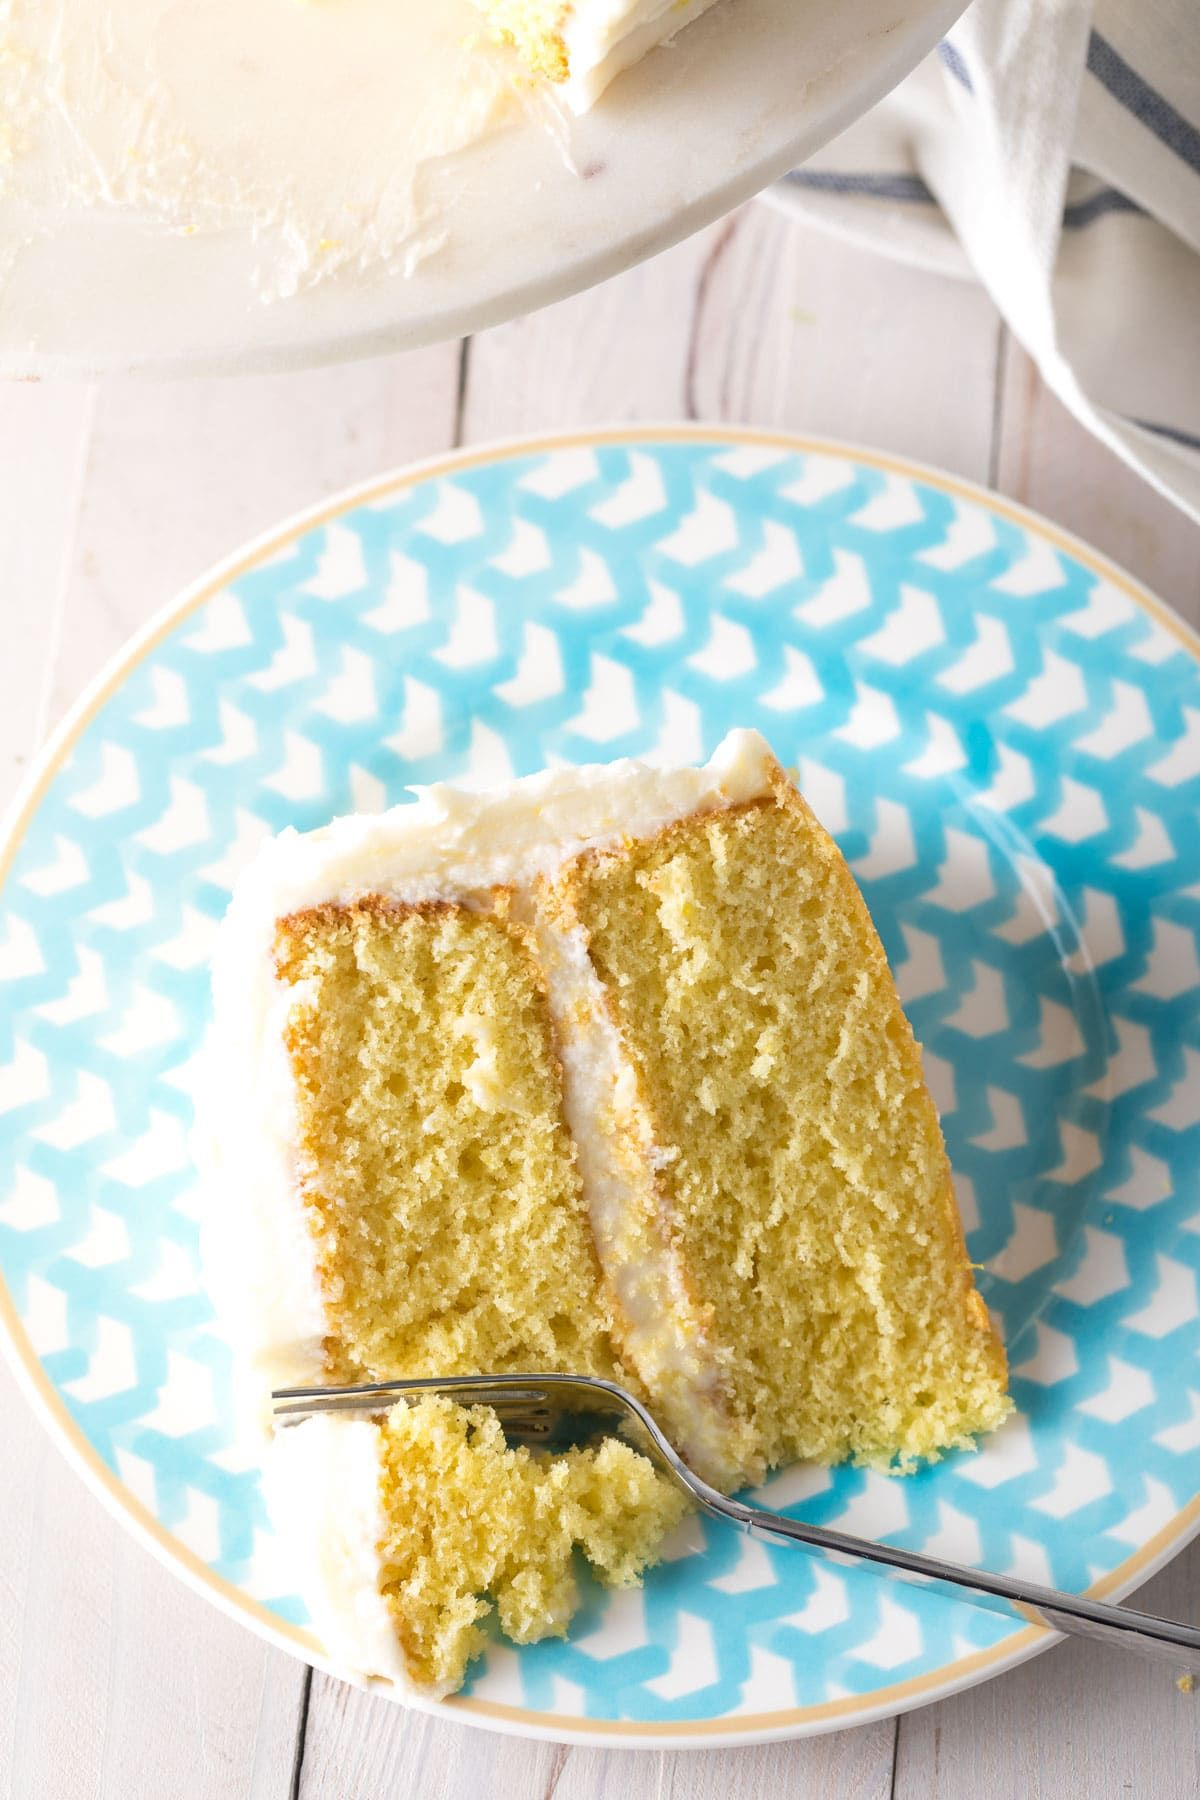 Best Buttermilk Cake Recipe Aspicyperspective Lemon Cake Easter Buttermilk Cake Recipe Dessert Cake Recipes Sweet Recipes Desserts